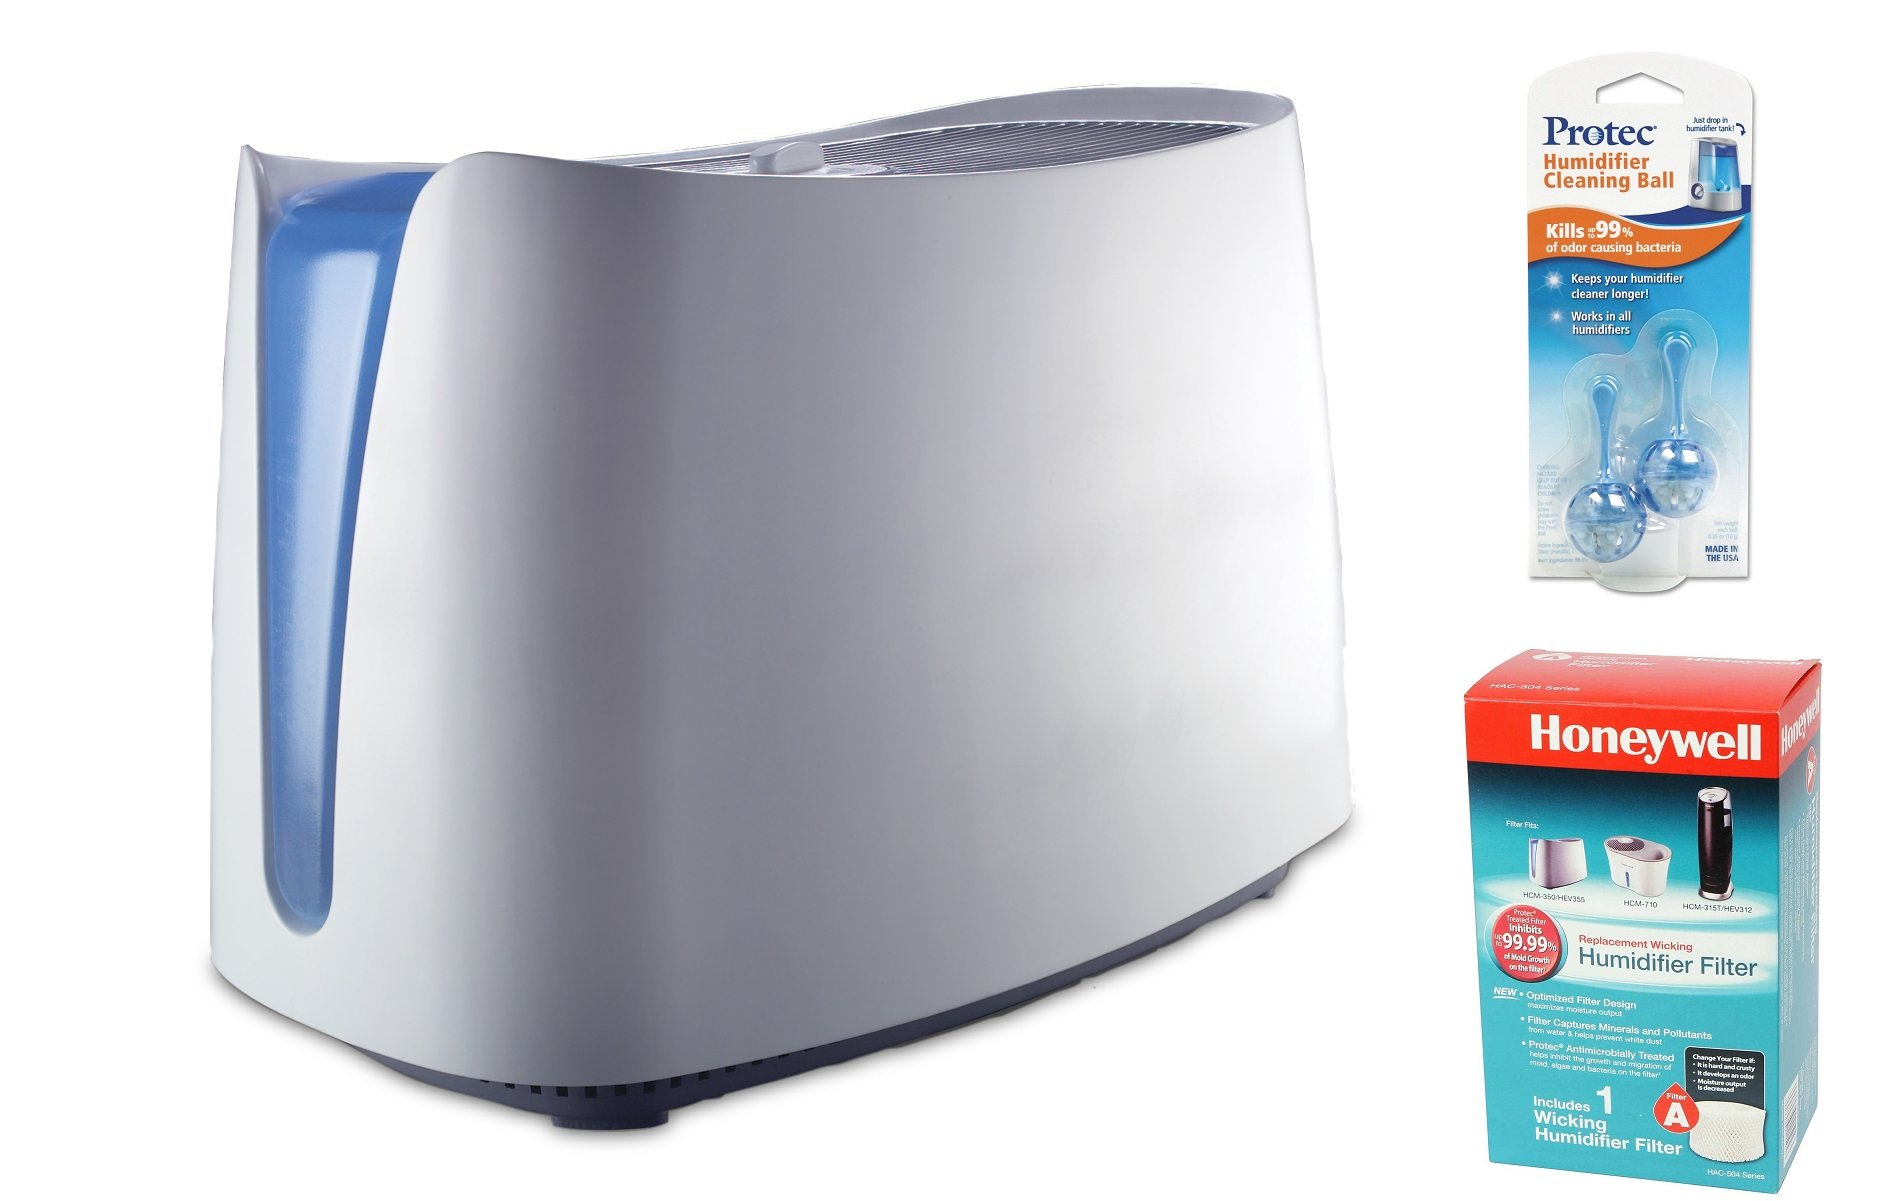 Honeywell HCM350W UV Germ Free Cool Moisture Humidifier and Honeywell HAC-504AW Humidifier Filter, and PC2V1 Humidifier Cleaning Cartridge Bundle